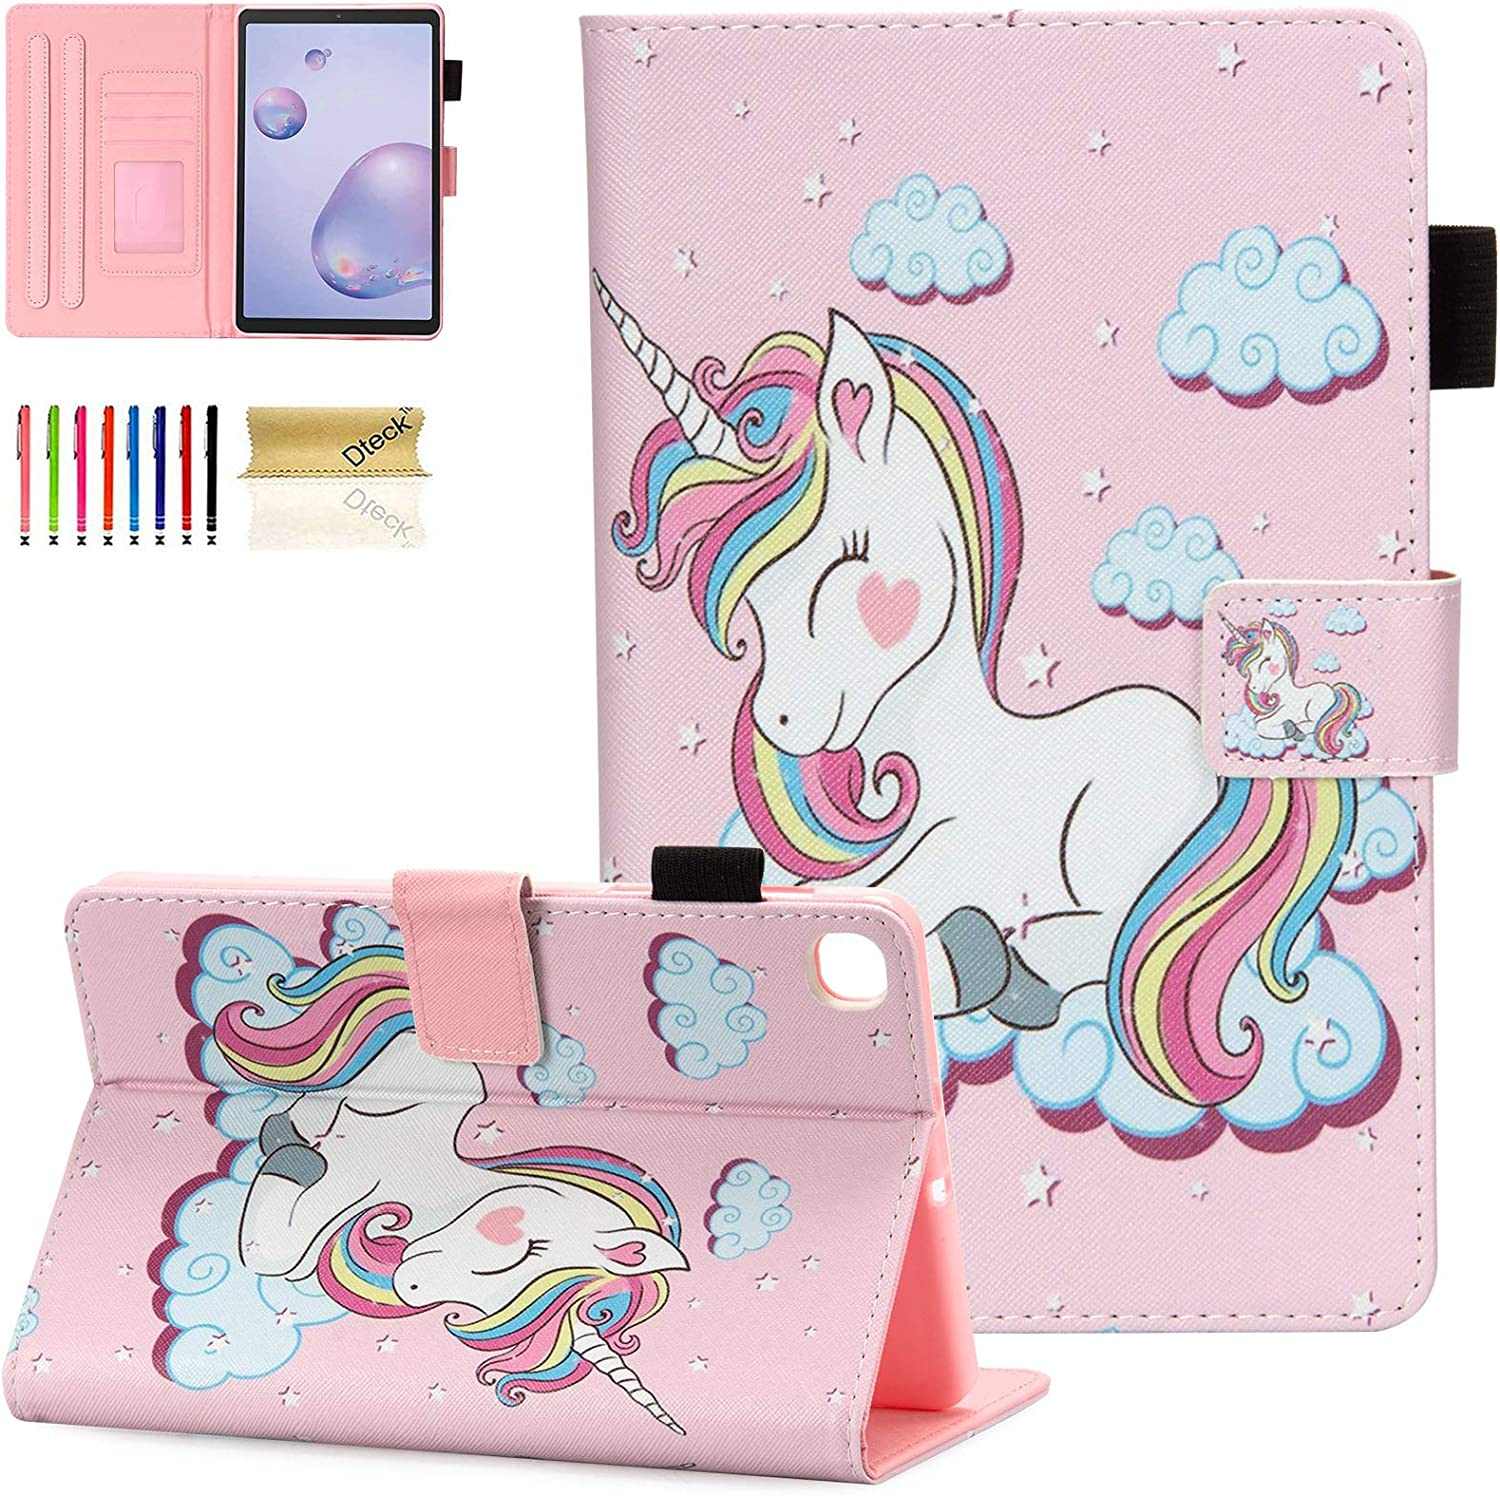 Dteck Case for Samsung Galaxy Tab A 8.4 2020 SM-T307 Verizon/Sprint/T-Mobile/AT&T, Slim Multi-Angle Folio Stand Premium PU Leather Case Protective Cover for T307 Galaxy Tab A 8.4 Tablet, Pink Unicorn